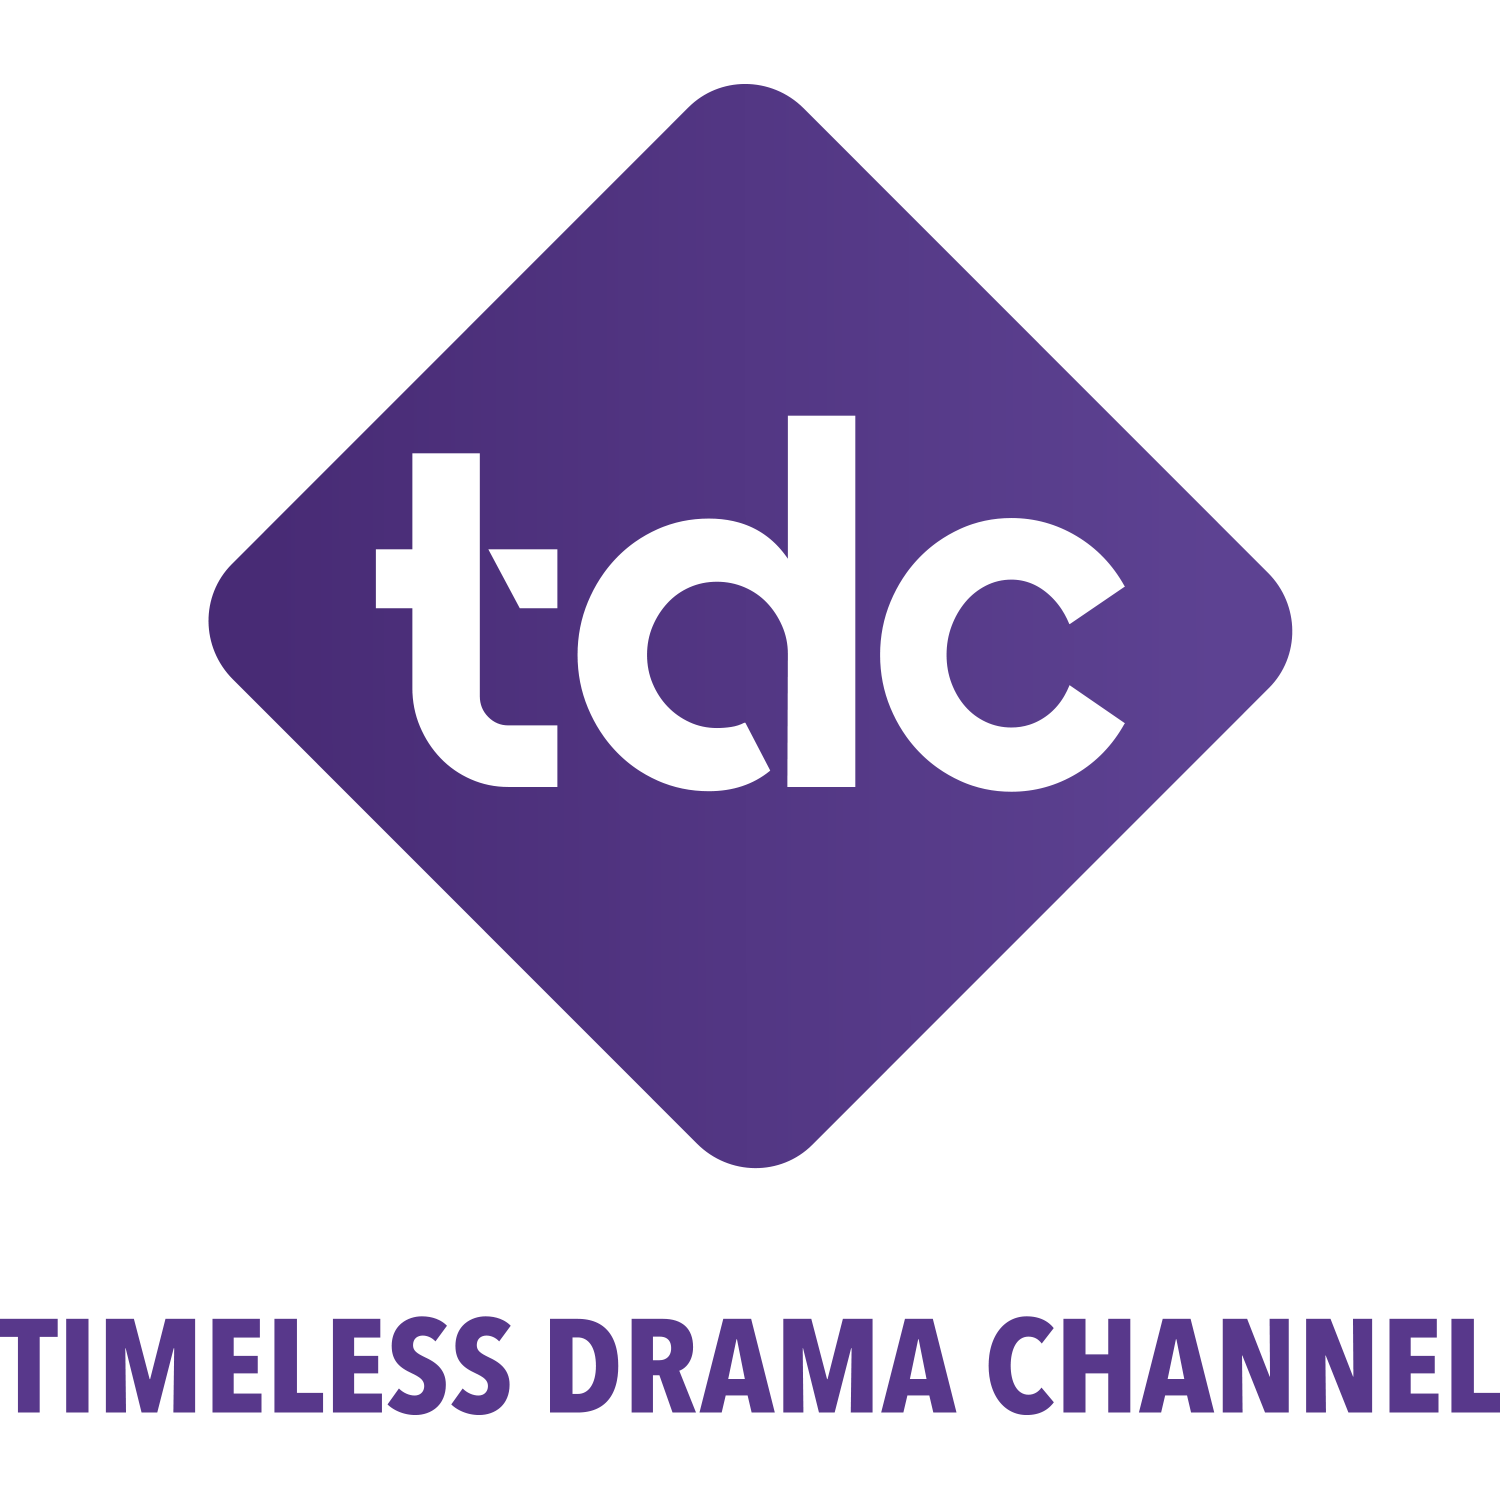 timeless drama channel tdc dark logo